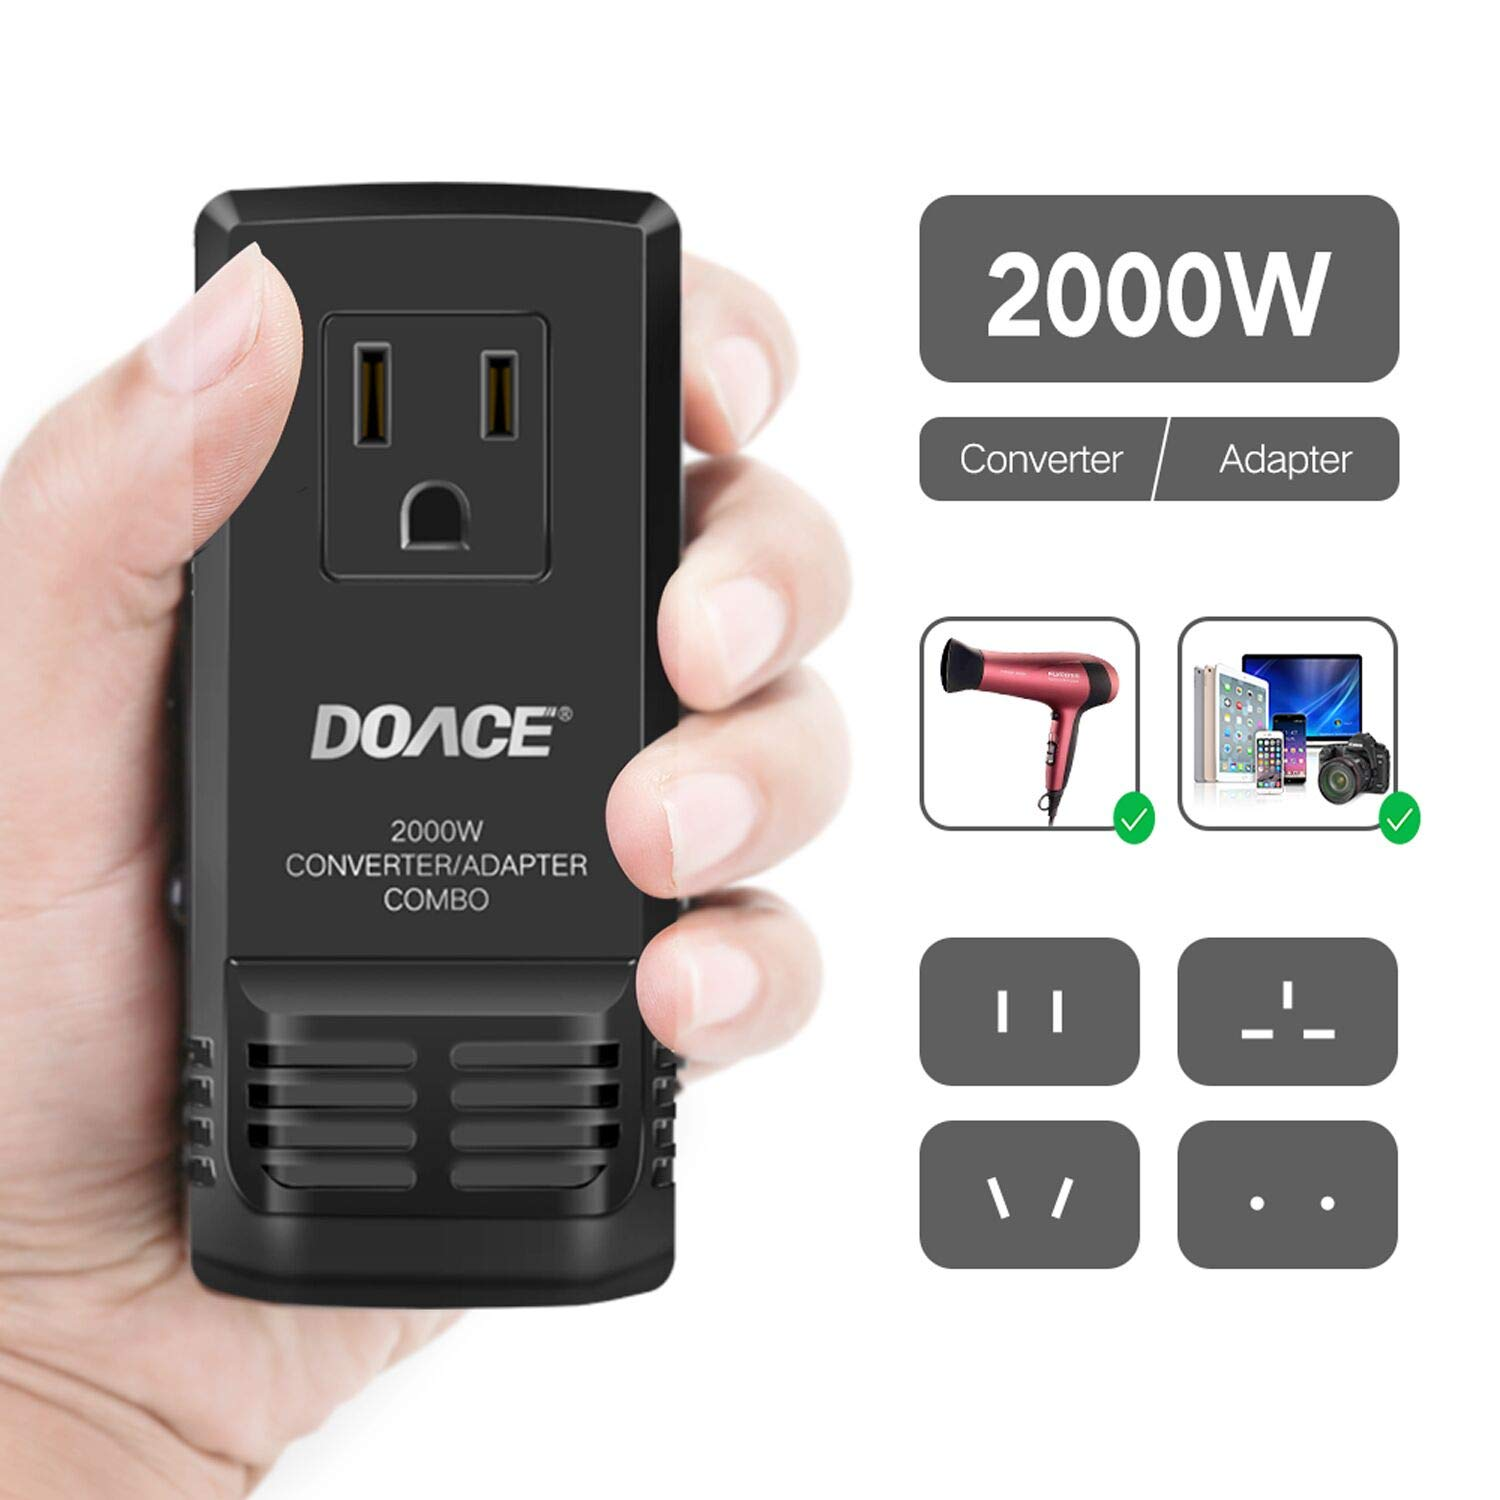 DOACE [Upgraded] 2000W Travel Voltage Converter for Hair Dryer, All in One Adapter Plug for UK/AU/US/EU for Phone, Camera, Tablet, Laptop, Set Down 220V to 110V International Mini Transformer CON C8